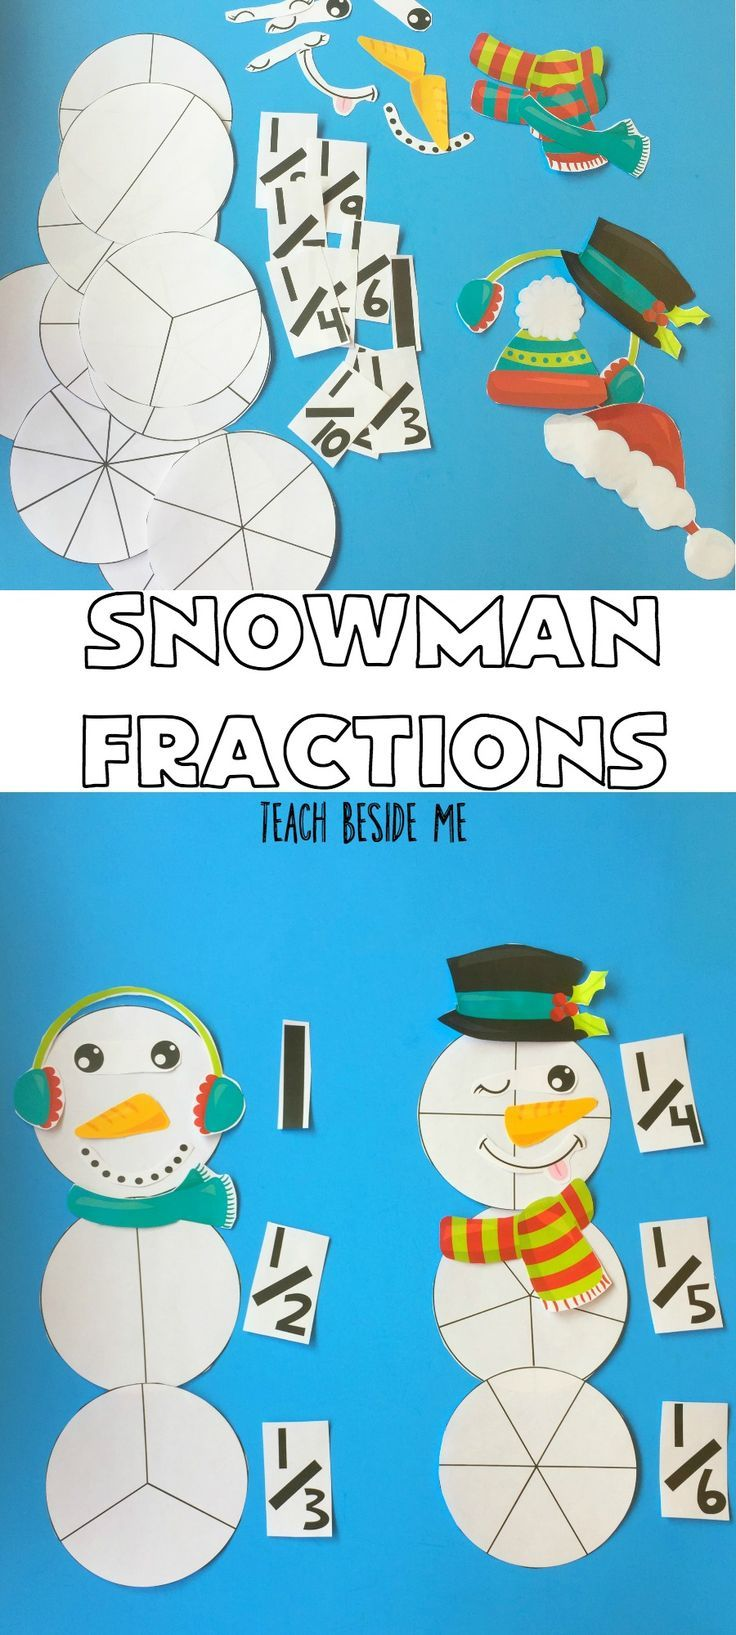 winter math snowman fractions homeschooling fractions math math crafts. Black Bedroom Furniture Sets. Home Design Ideas